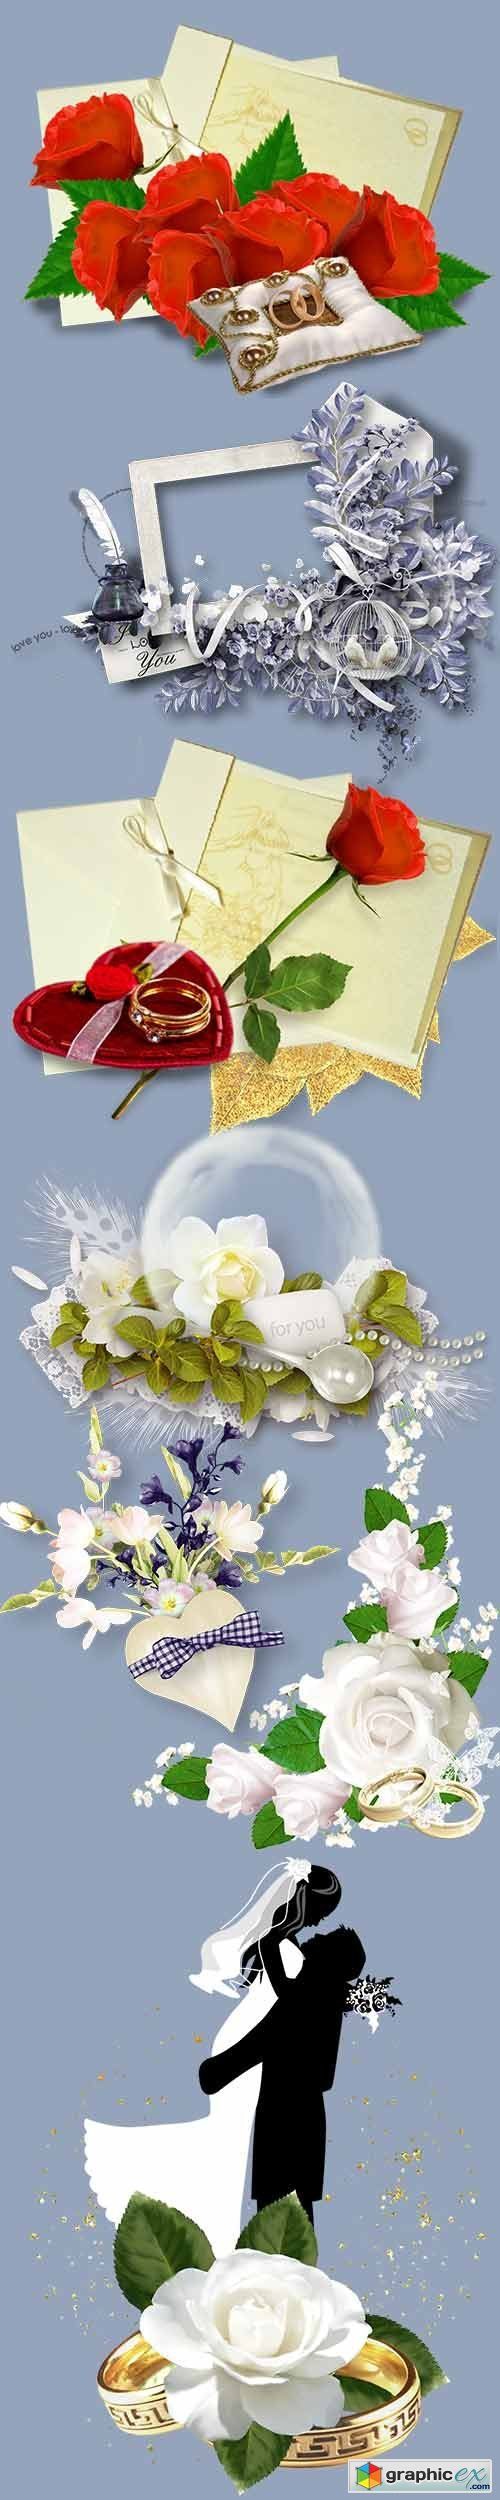 Clusters and png cliparts for wedding design